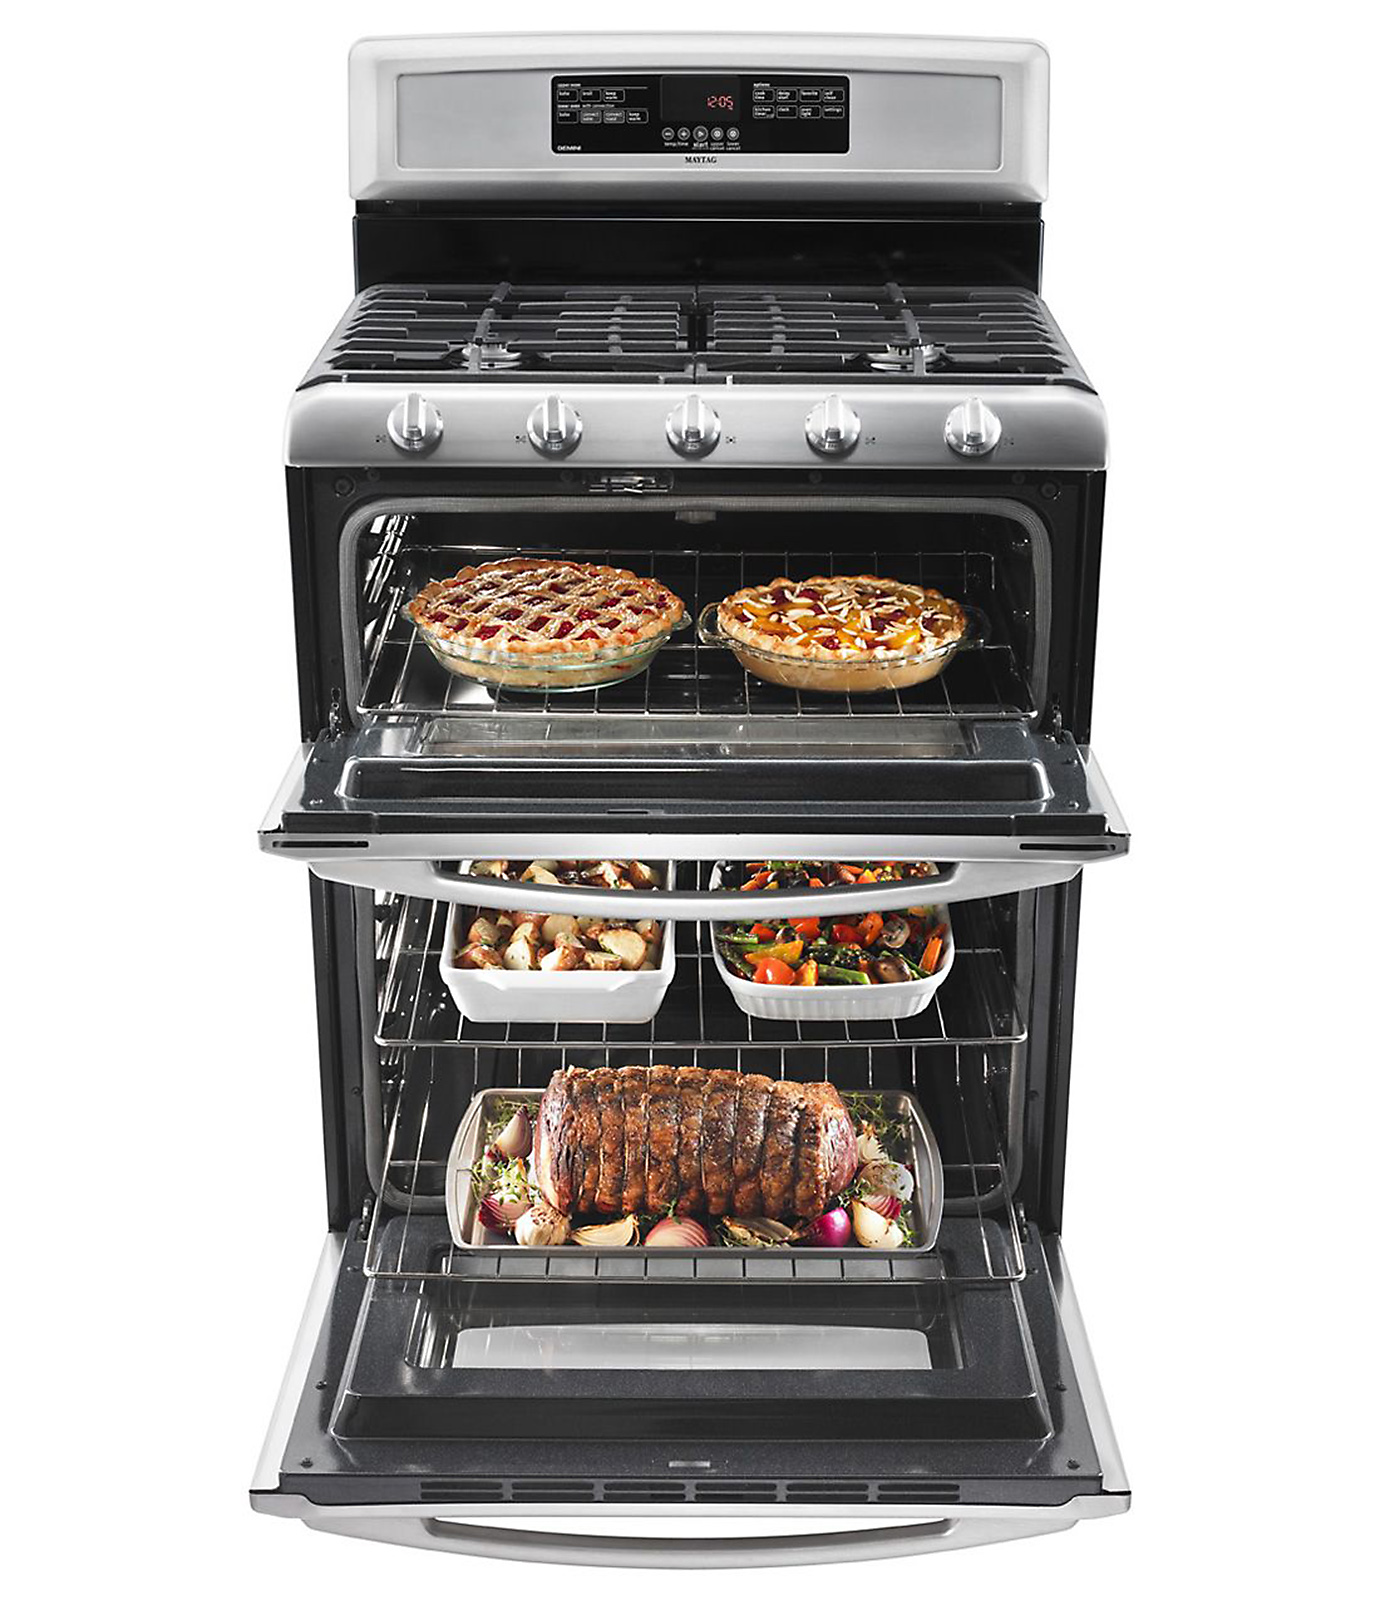 Maytag 6 cu. ft. Double-Oven Gas Range - Stainless Steel